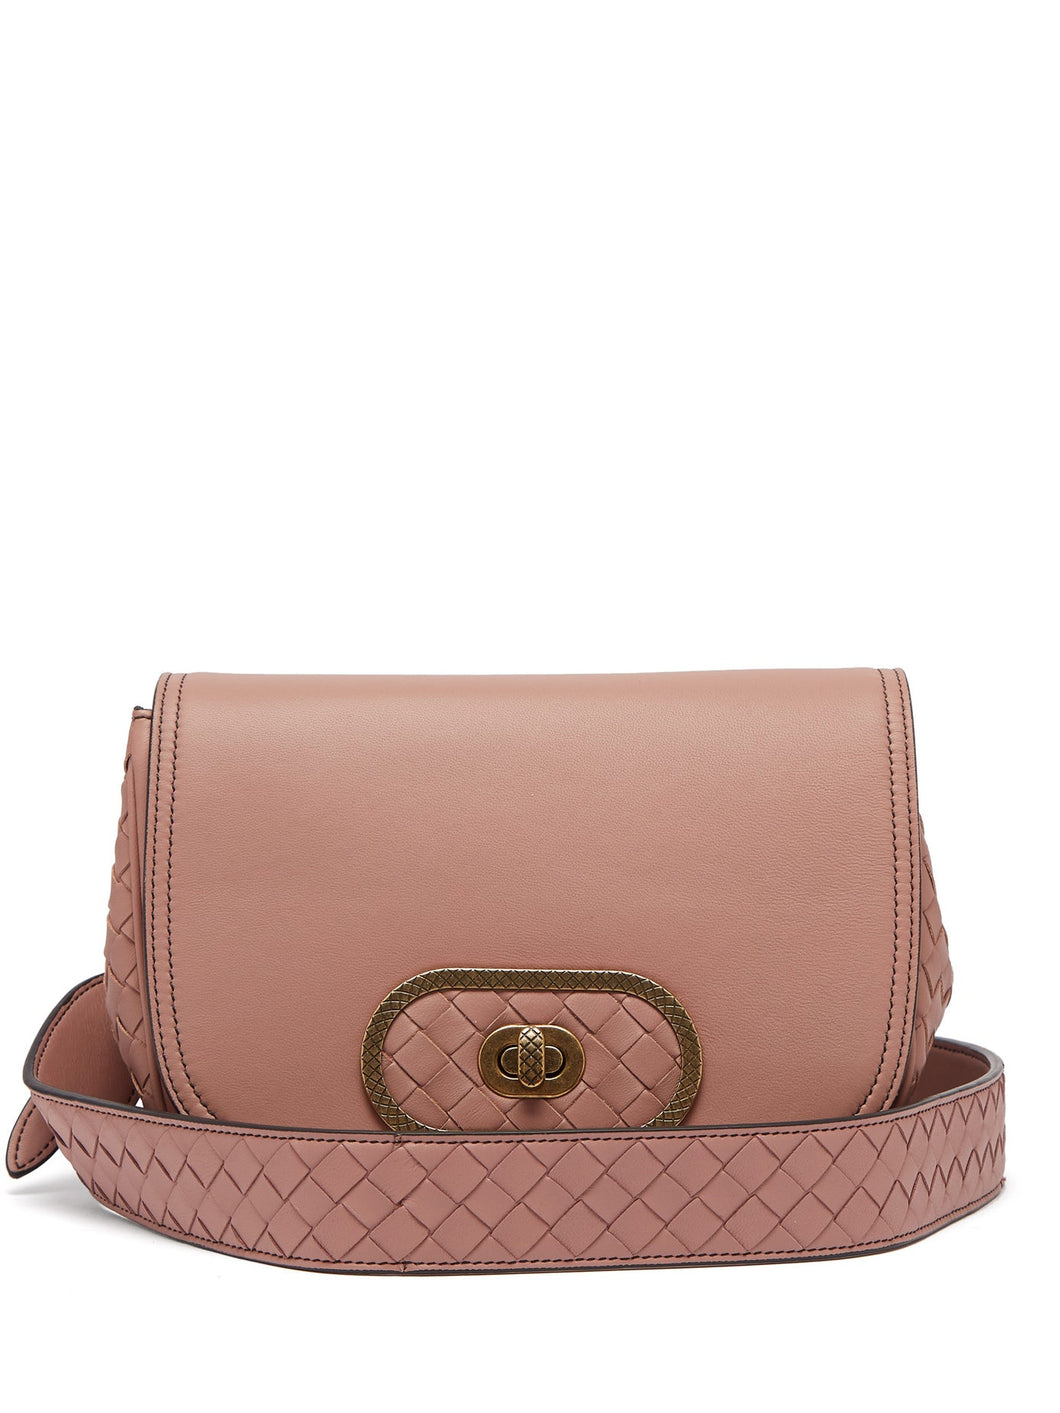 BV Luna leather cross-body bag